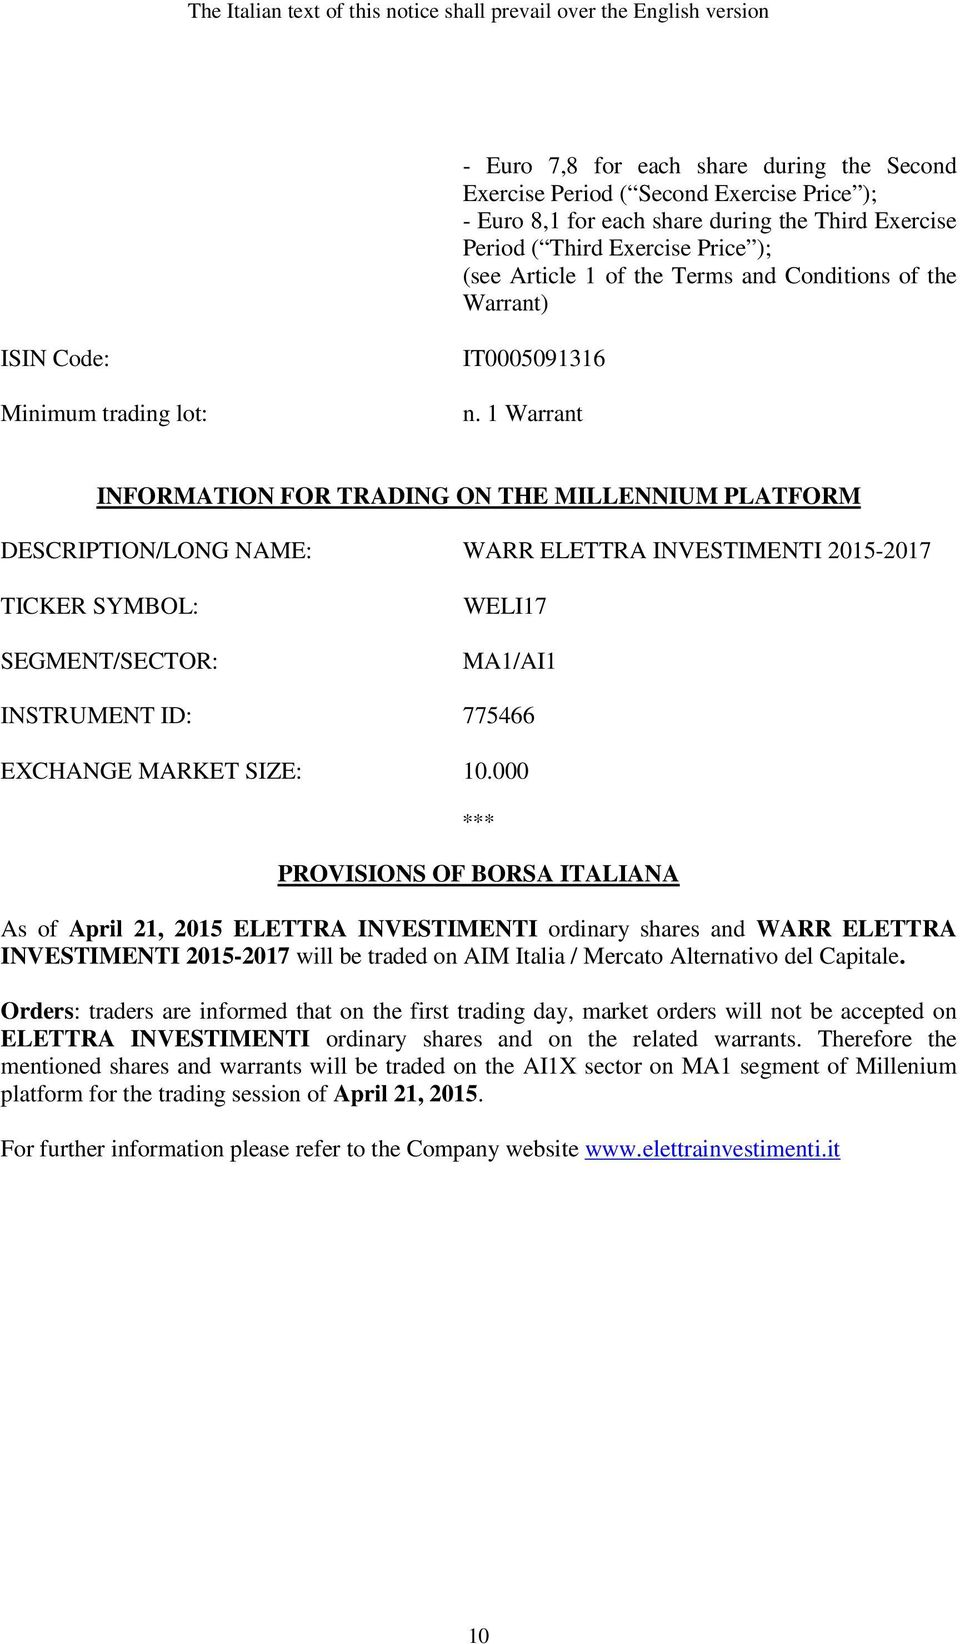 1 Warrant INFORMATION FOR TRADING ON THE MILLENNIUM PLATFORM DESCRIPTION/LONG NAME: WARR ELETTRA INVESTIMENTI 2015-2017 TICKER SYMBOL: SEGMENT/SECTOR: WELI17 MA1/AI1 INSTRUMENT ID: 775466 EXCHANGE